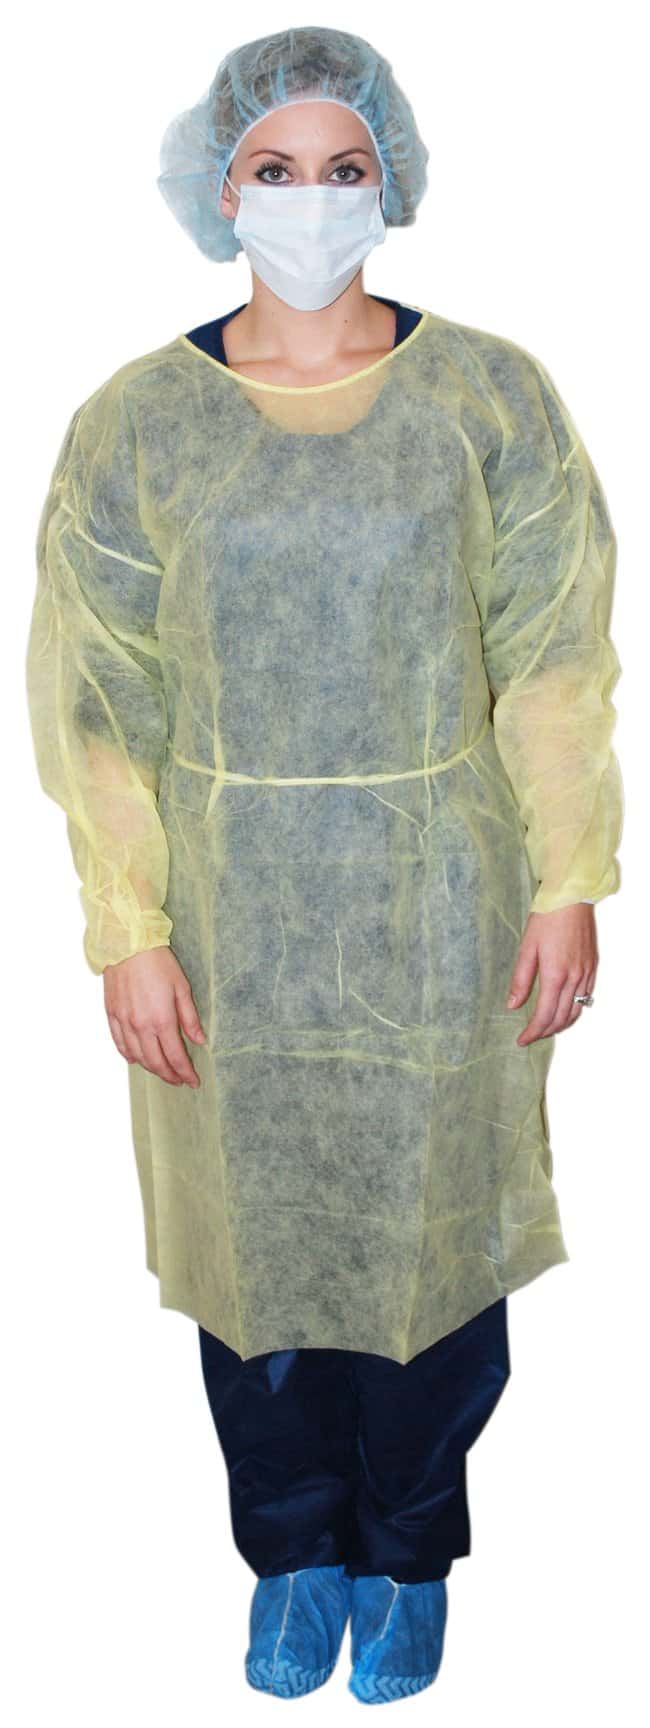 Dukal Isolation Gown:Gloves, Glasses and Safety:Personal Protective Equipment